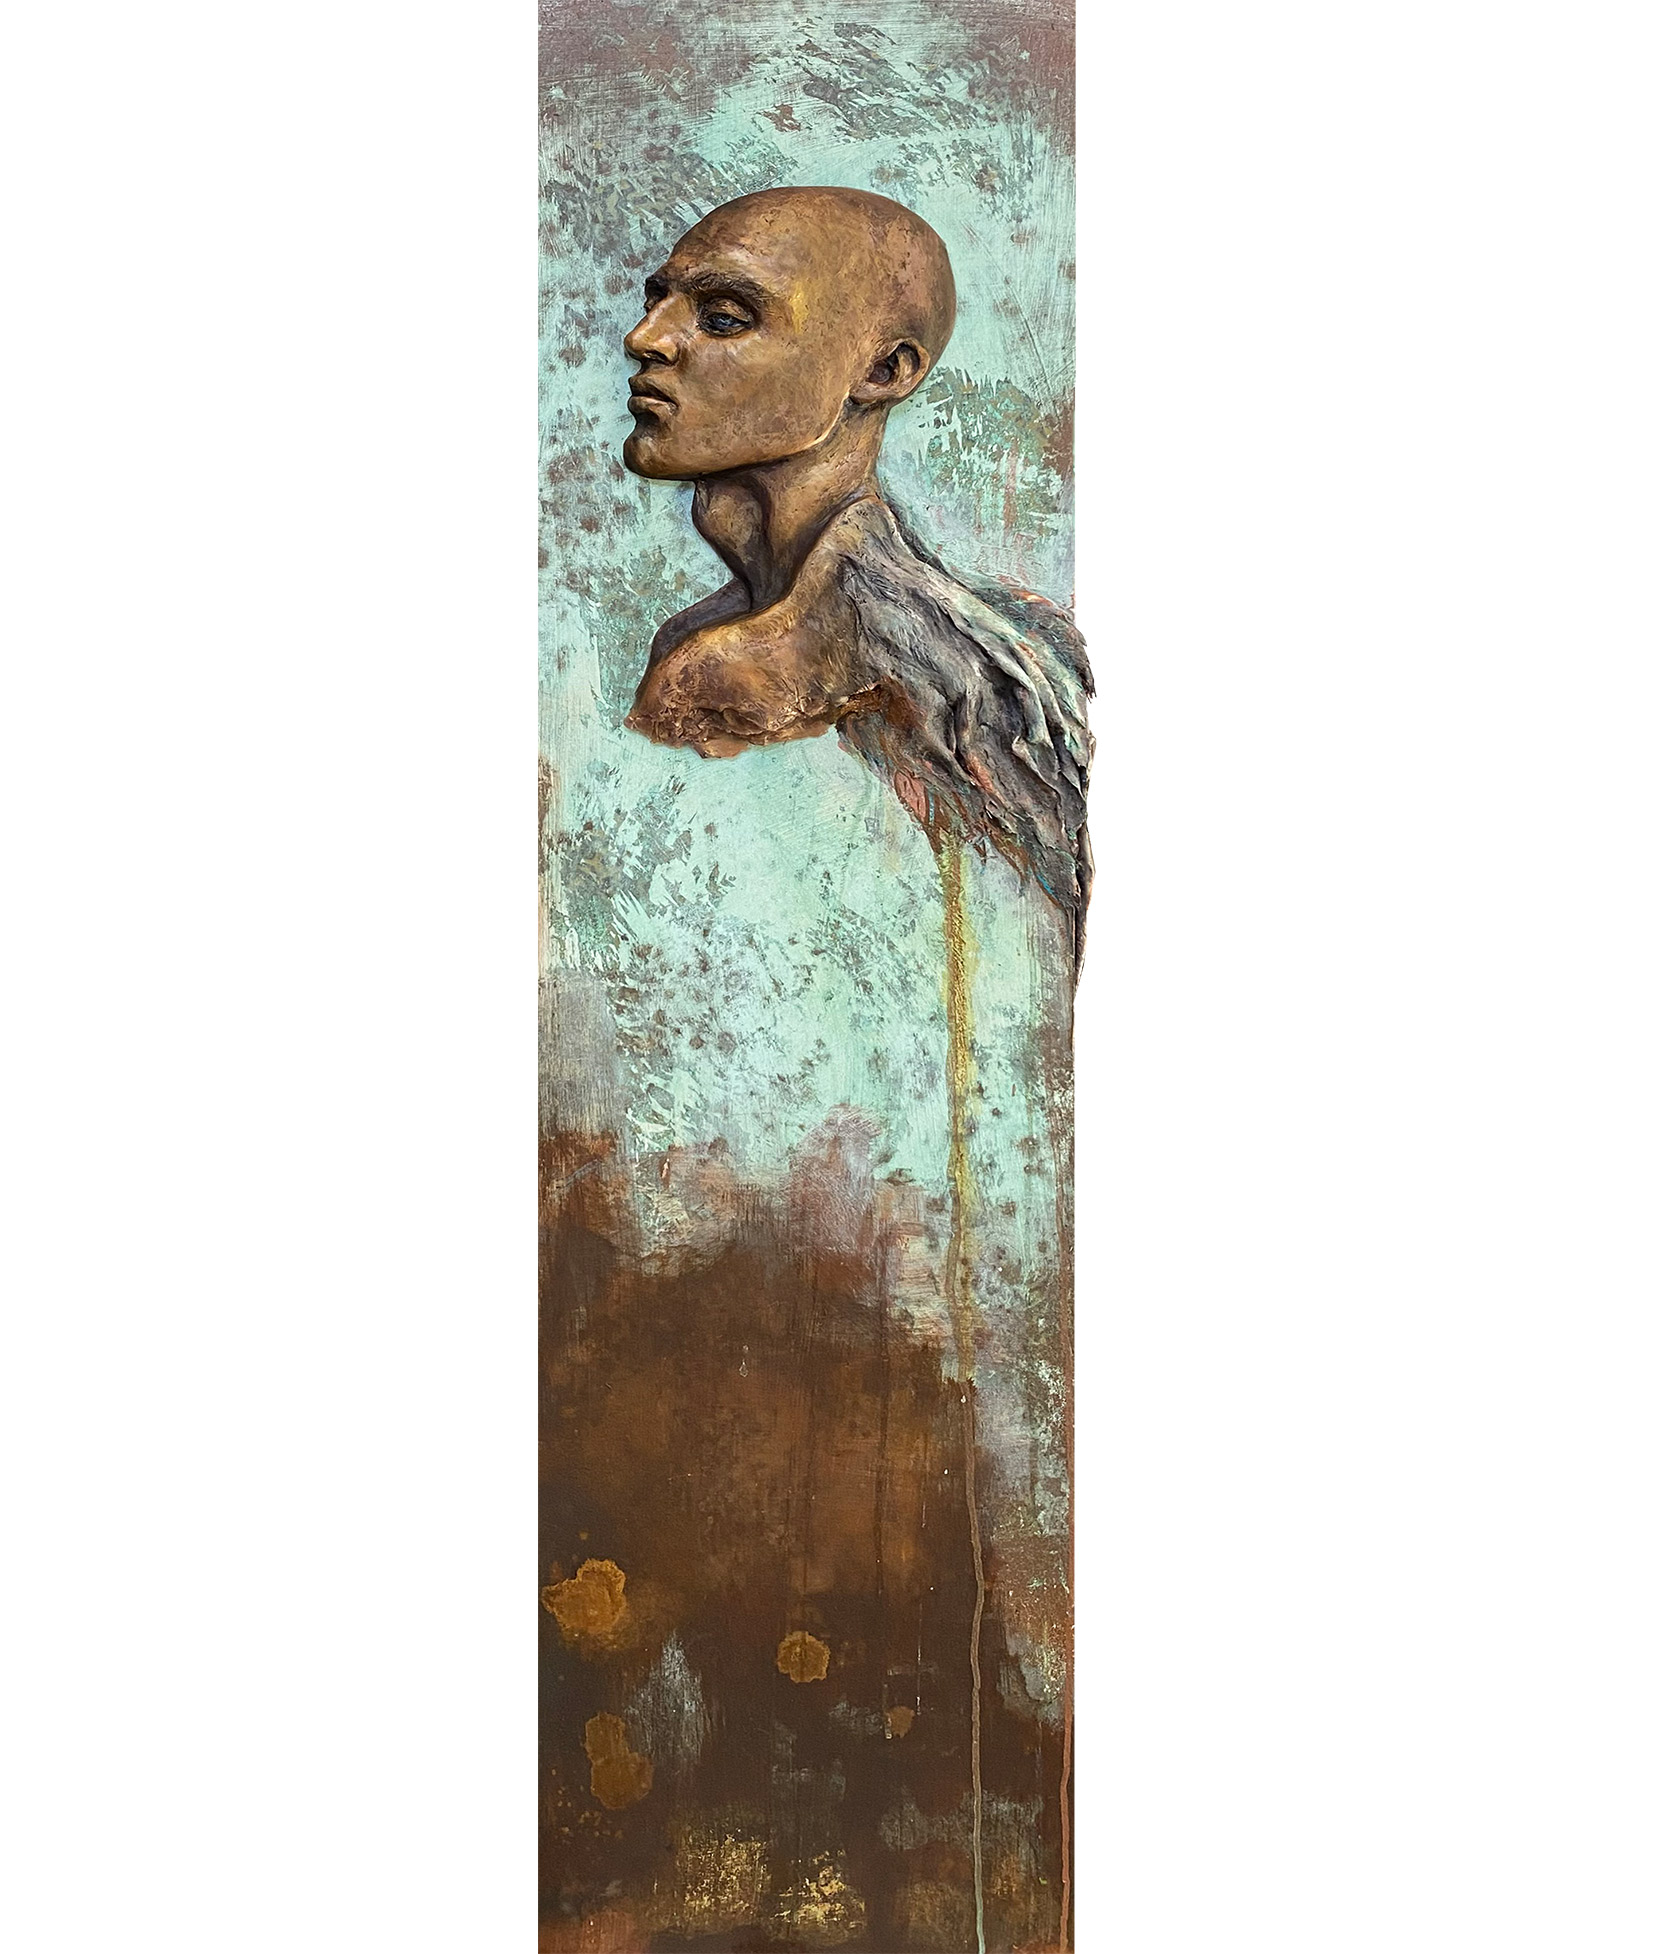 Icarus Sculptural Portrait